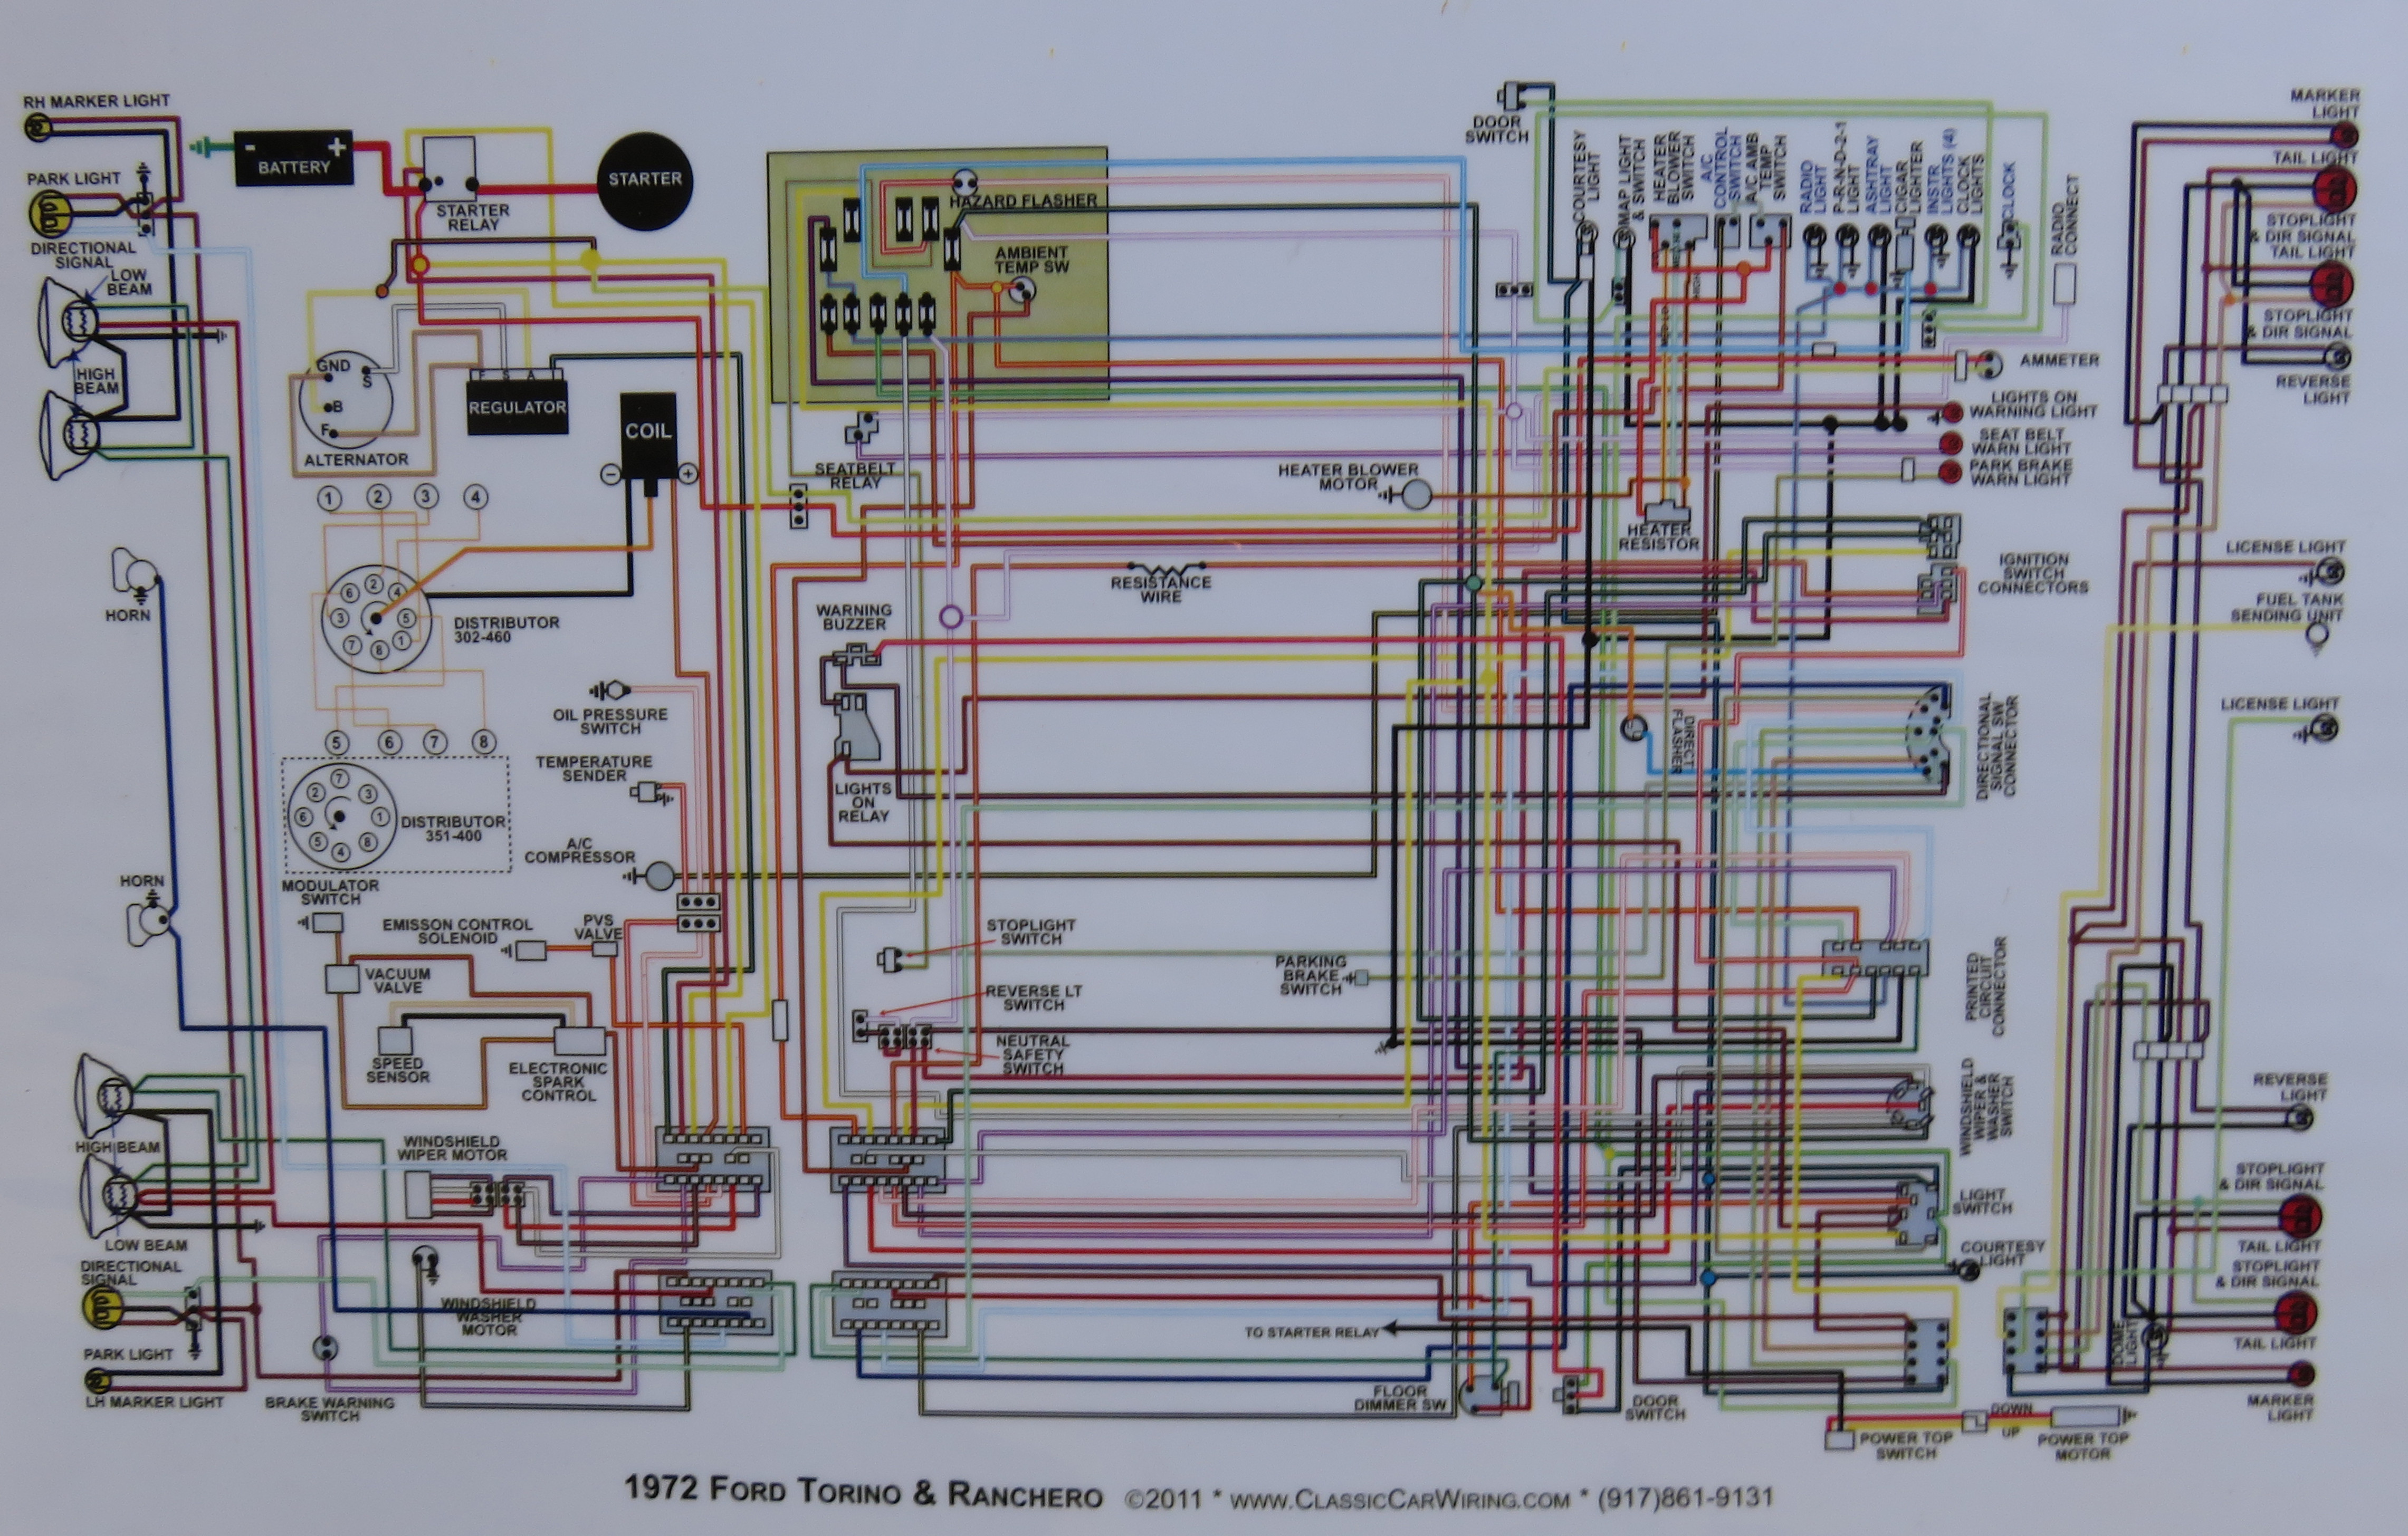 Rrtg18pabw Haier Refrigerator Wiring Diagram Diagrams Mini Fridge 32 Parts Manual Replacement For